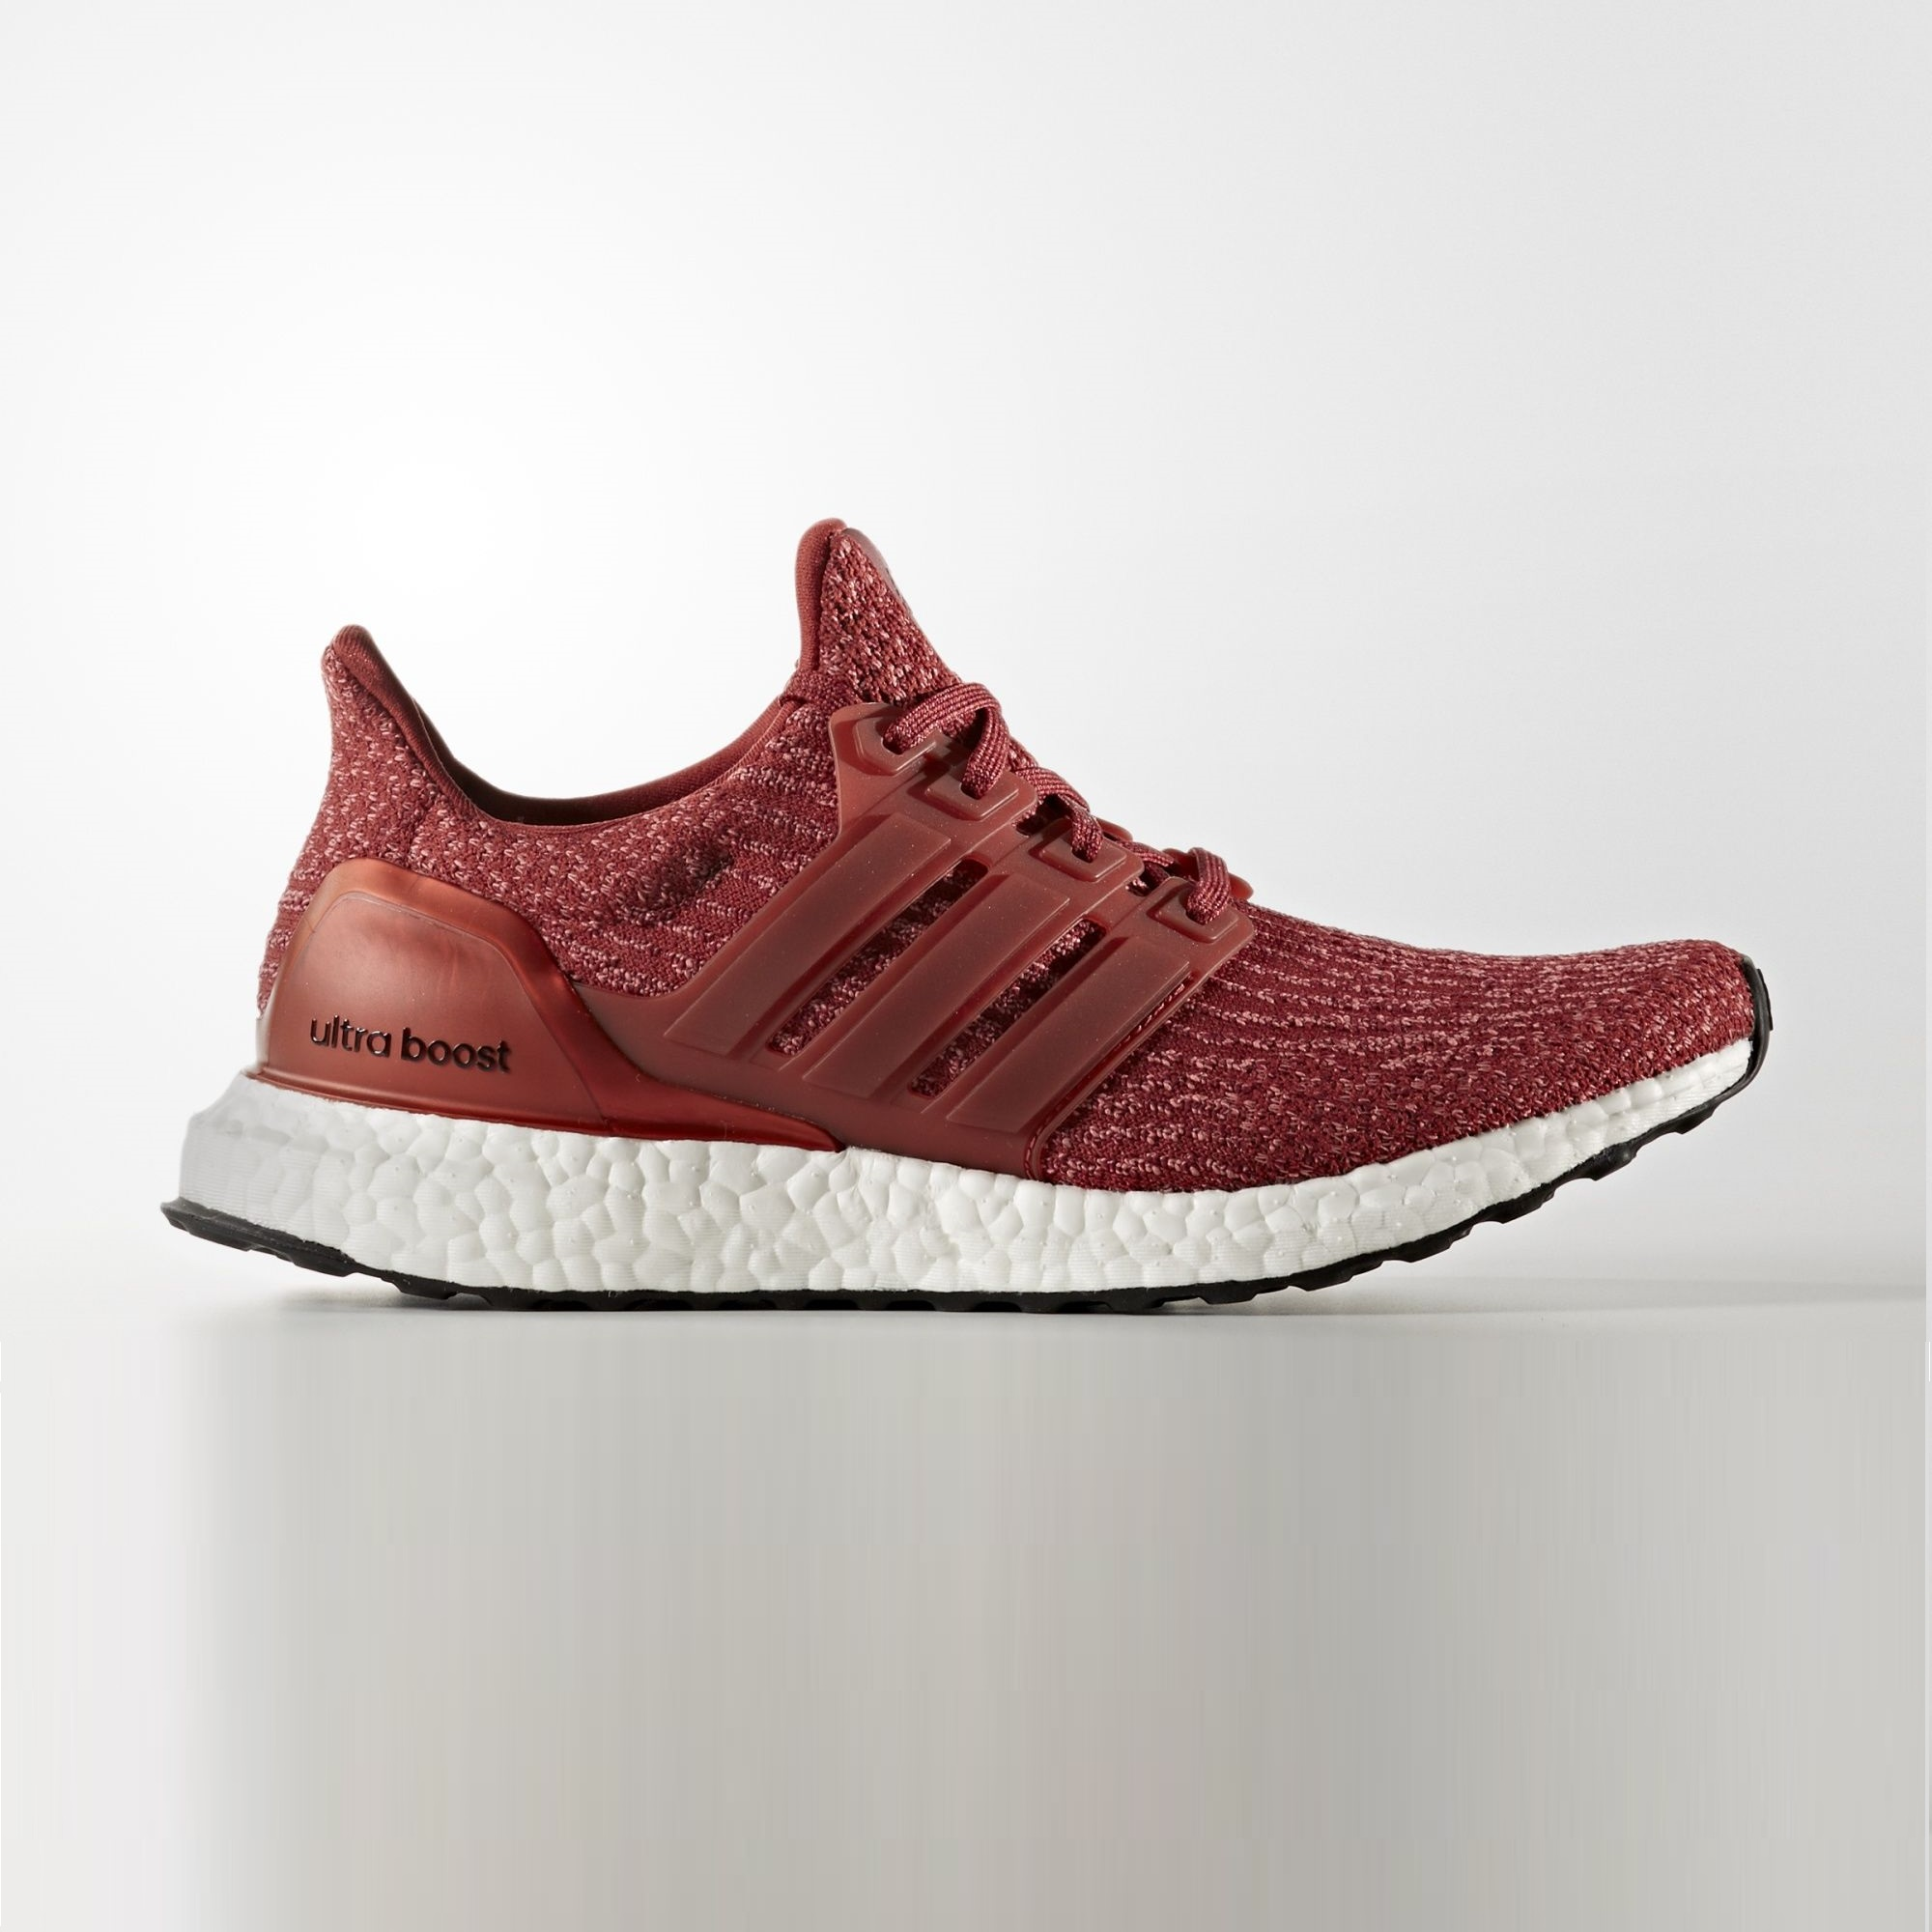 c0f633030ed7 Adidas Ultraboost Womens Running Shoes - Alton Sports